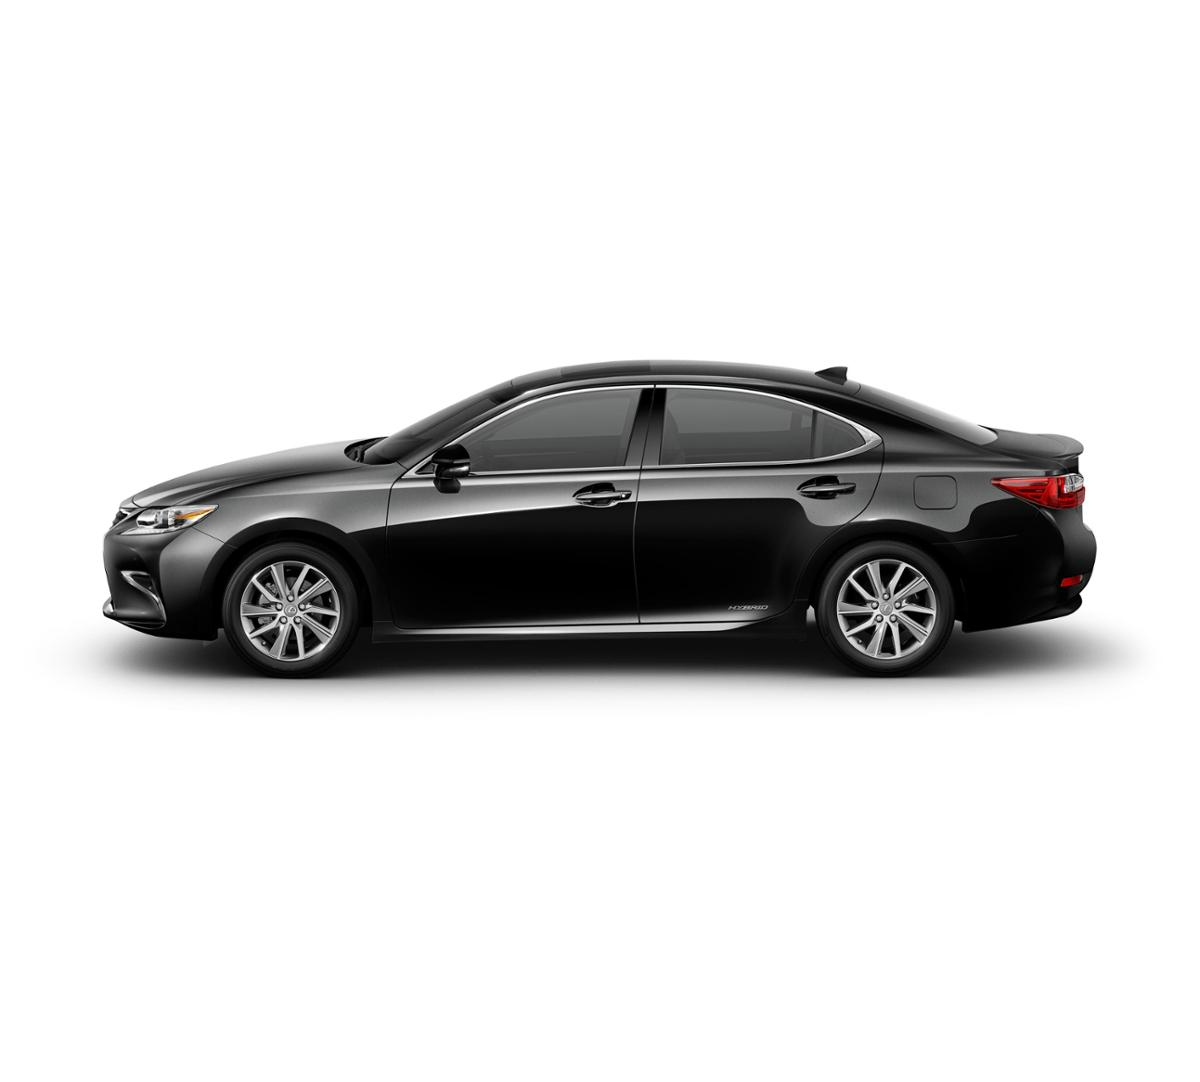 2018 Lexus ES 300h Vehicle Photo in Santa Monica, CA 90404